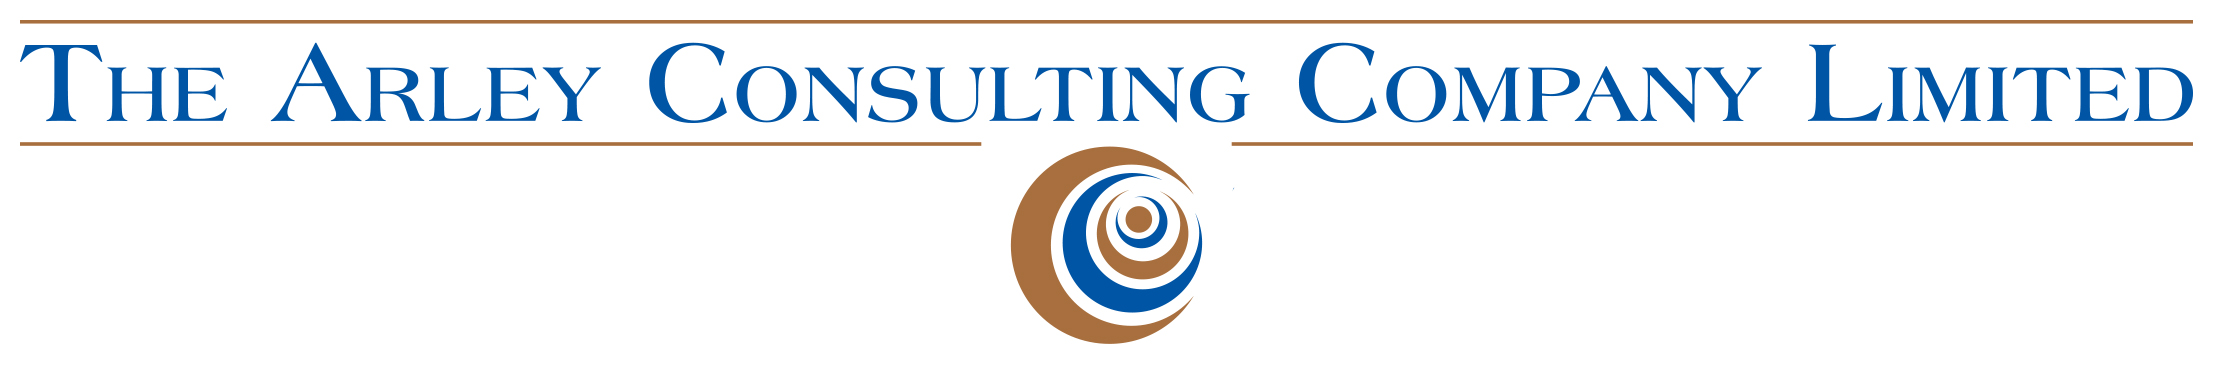 The Arley Consulting Company Limited